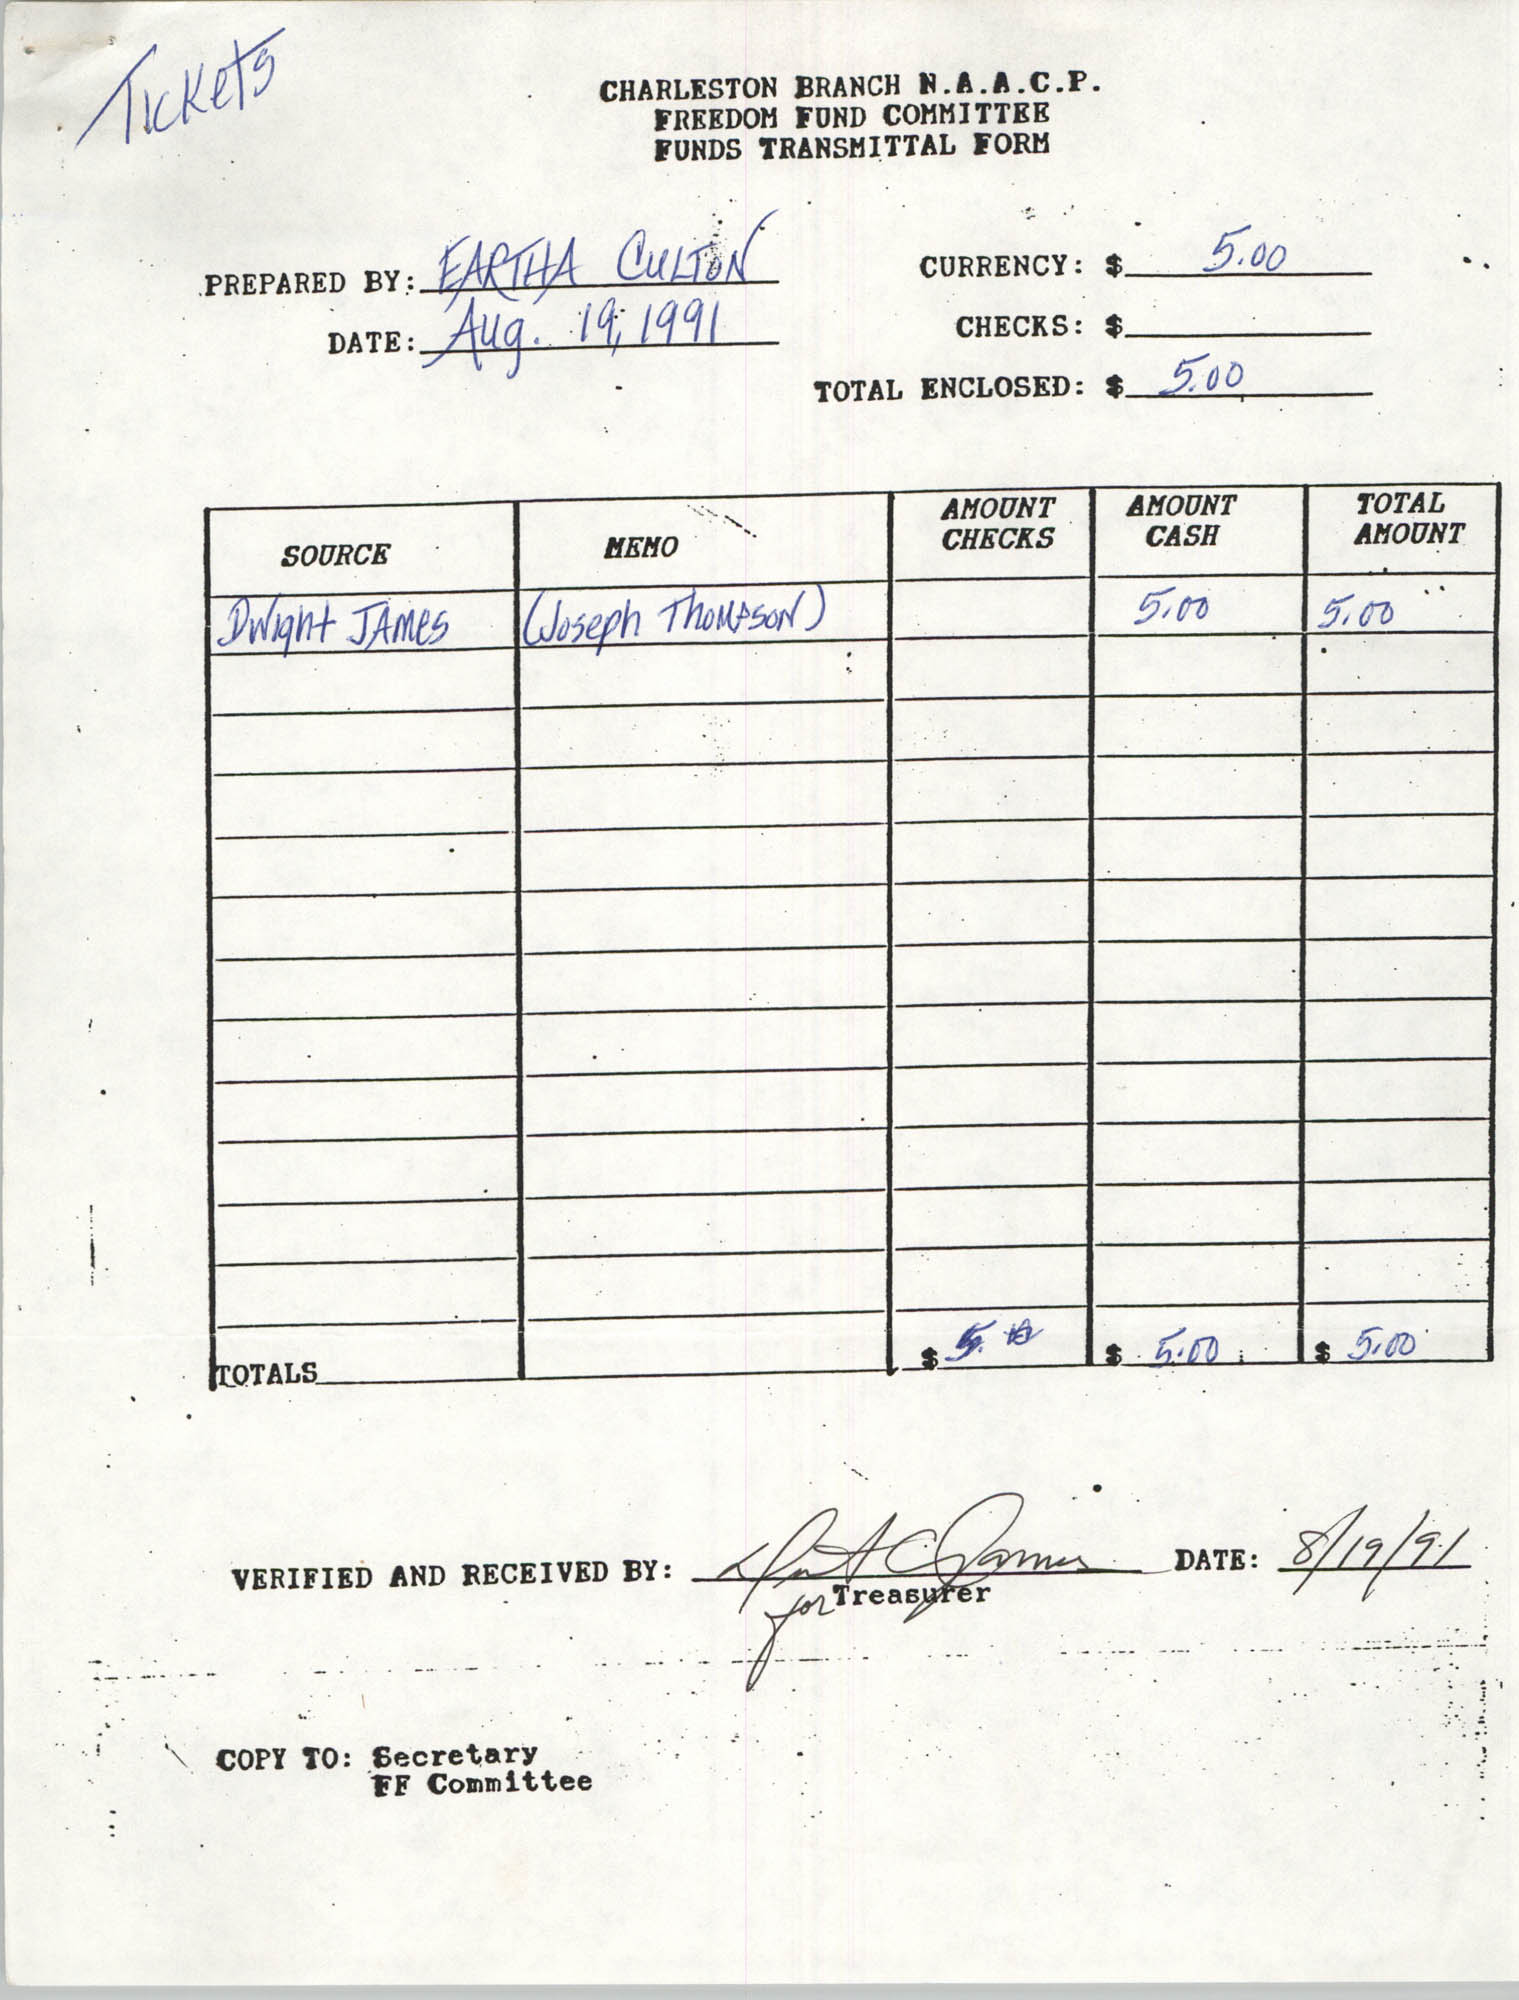 Charleston Branch of the NAACP Funds Transmittal Forms, August 1991, Page 17